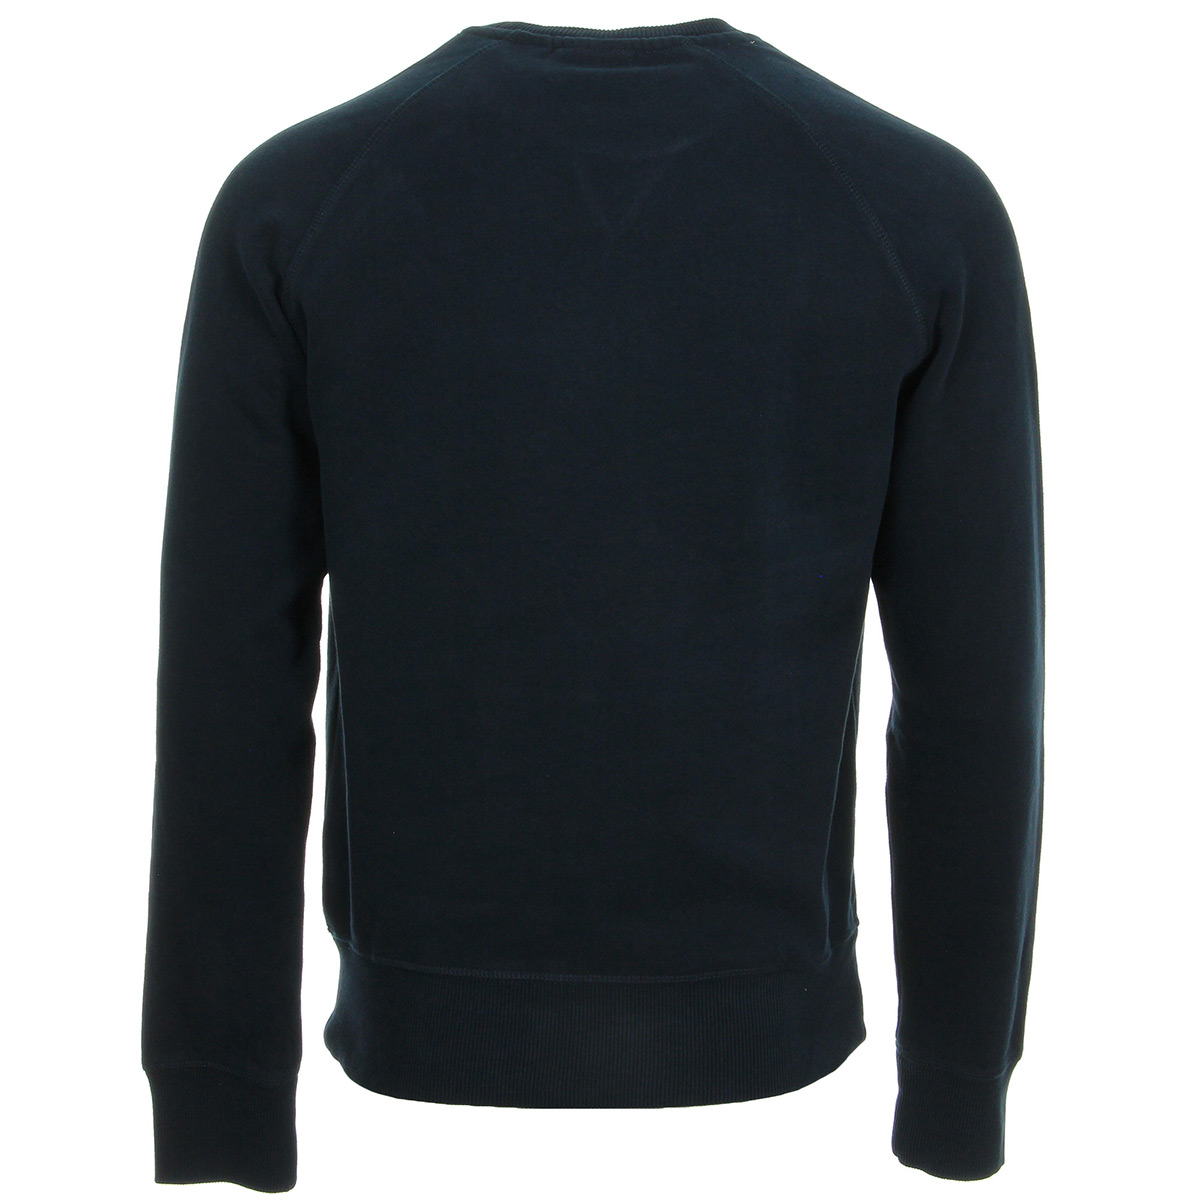 Timberland Exeter River Crew CA1R6U433, Sweats homme